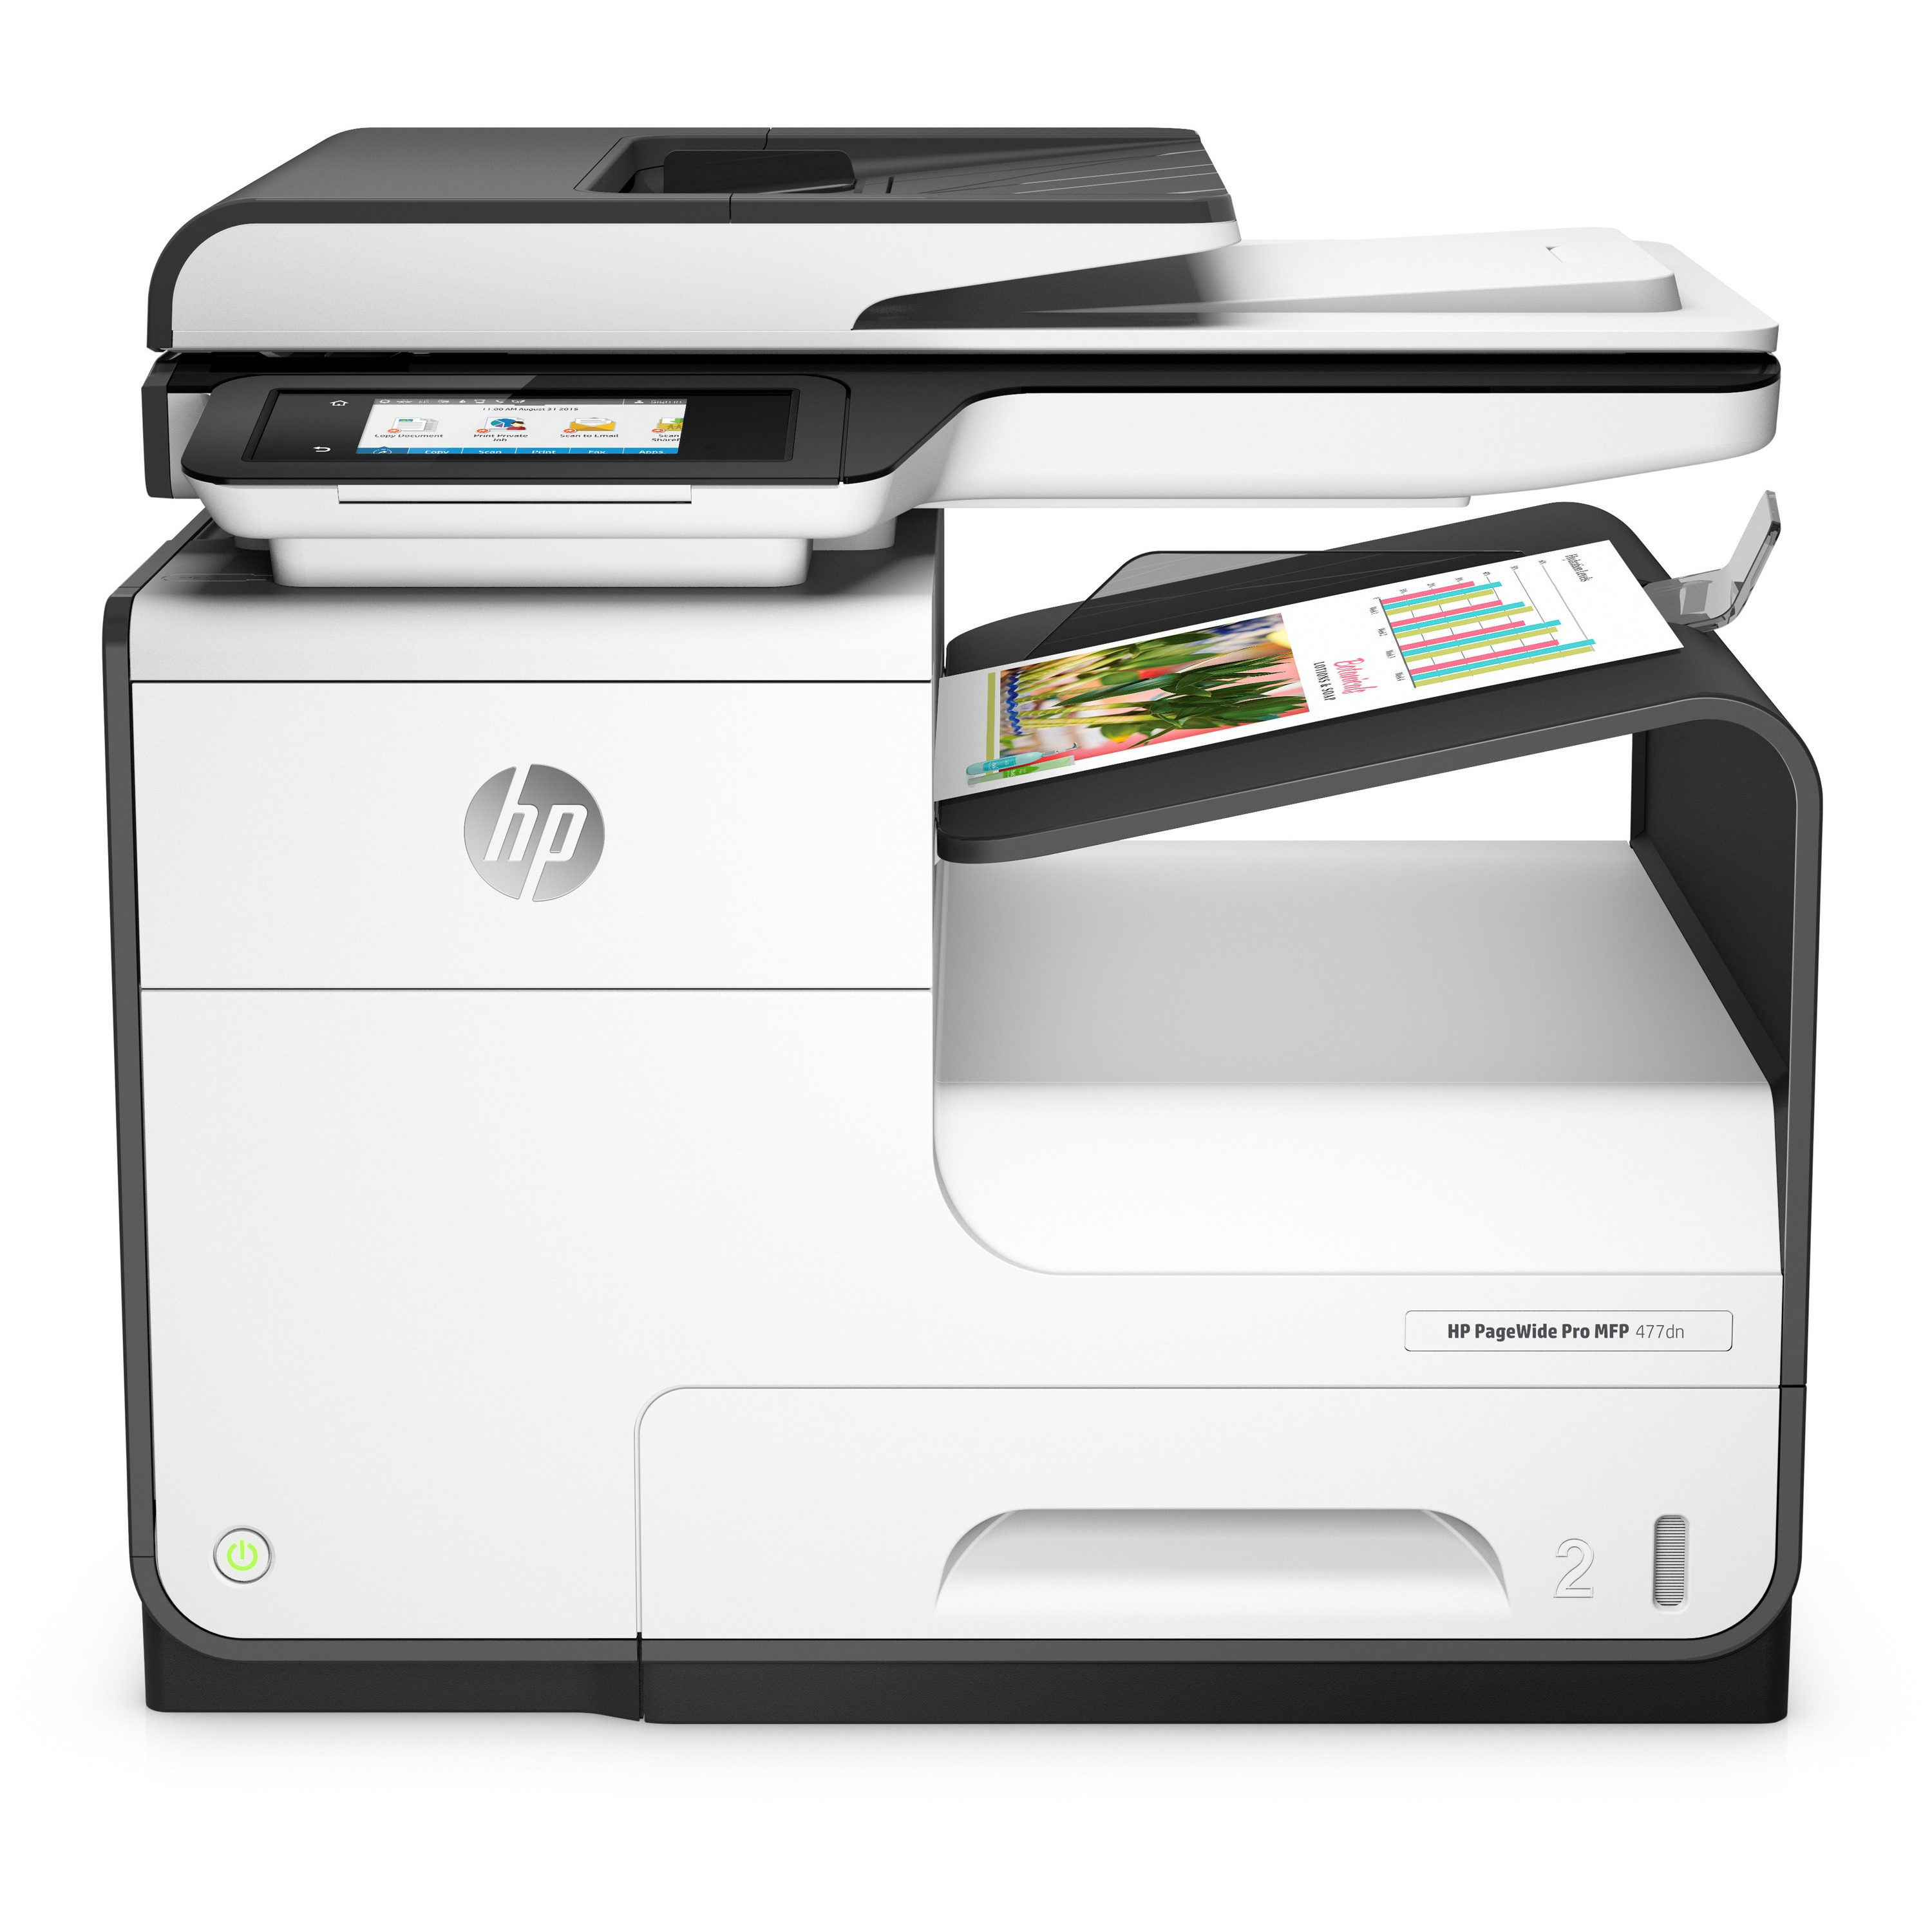 HP PageWide Pro 477dn Page Wide Array Multifunction Printer - Color - Plain Paper Print - Desktop